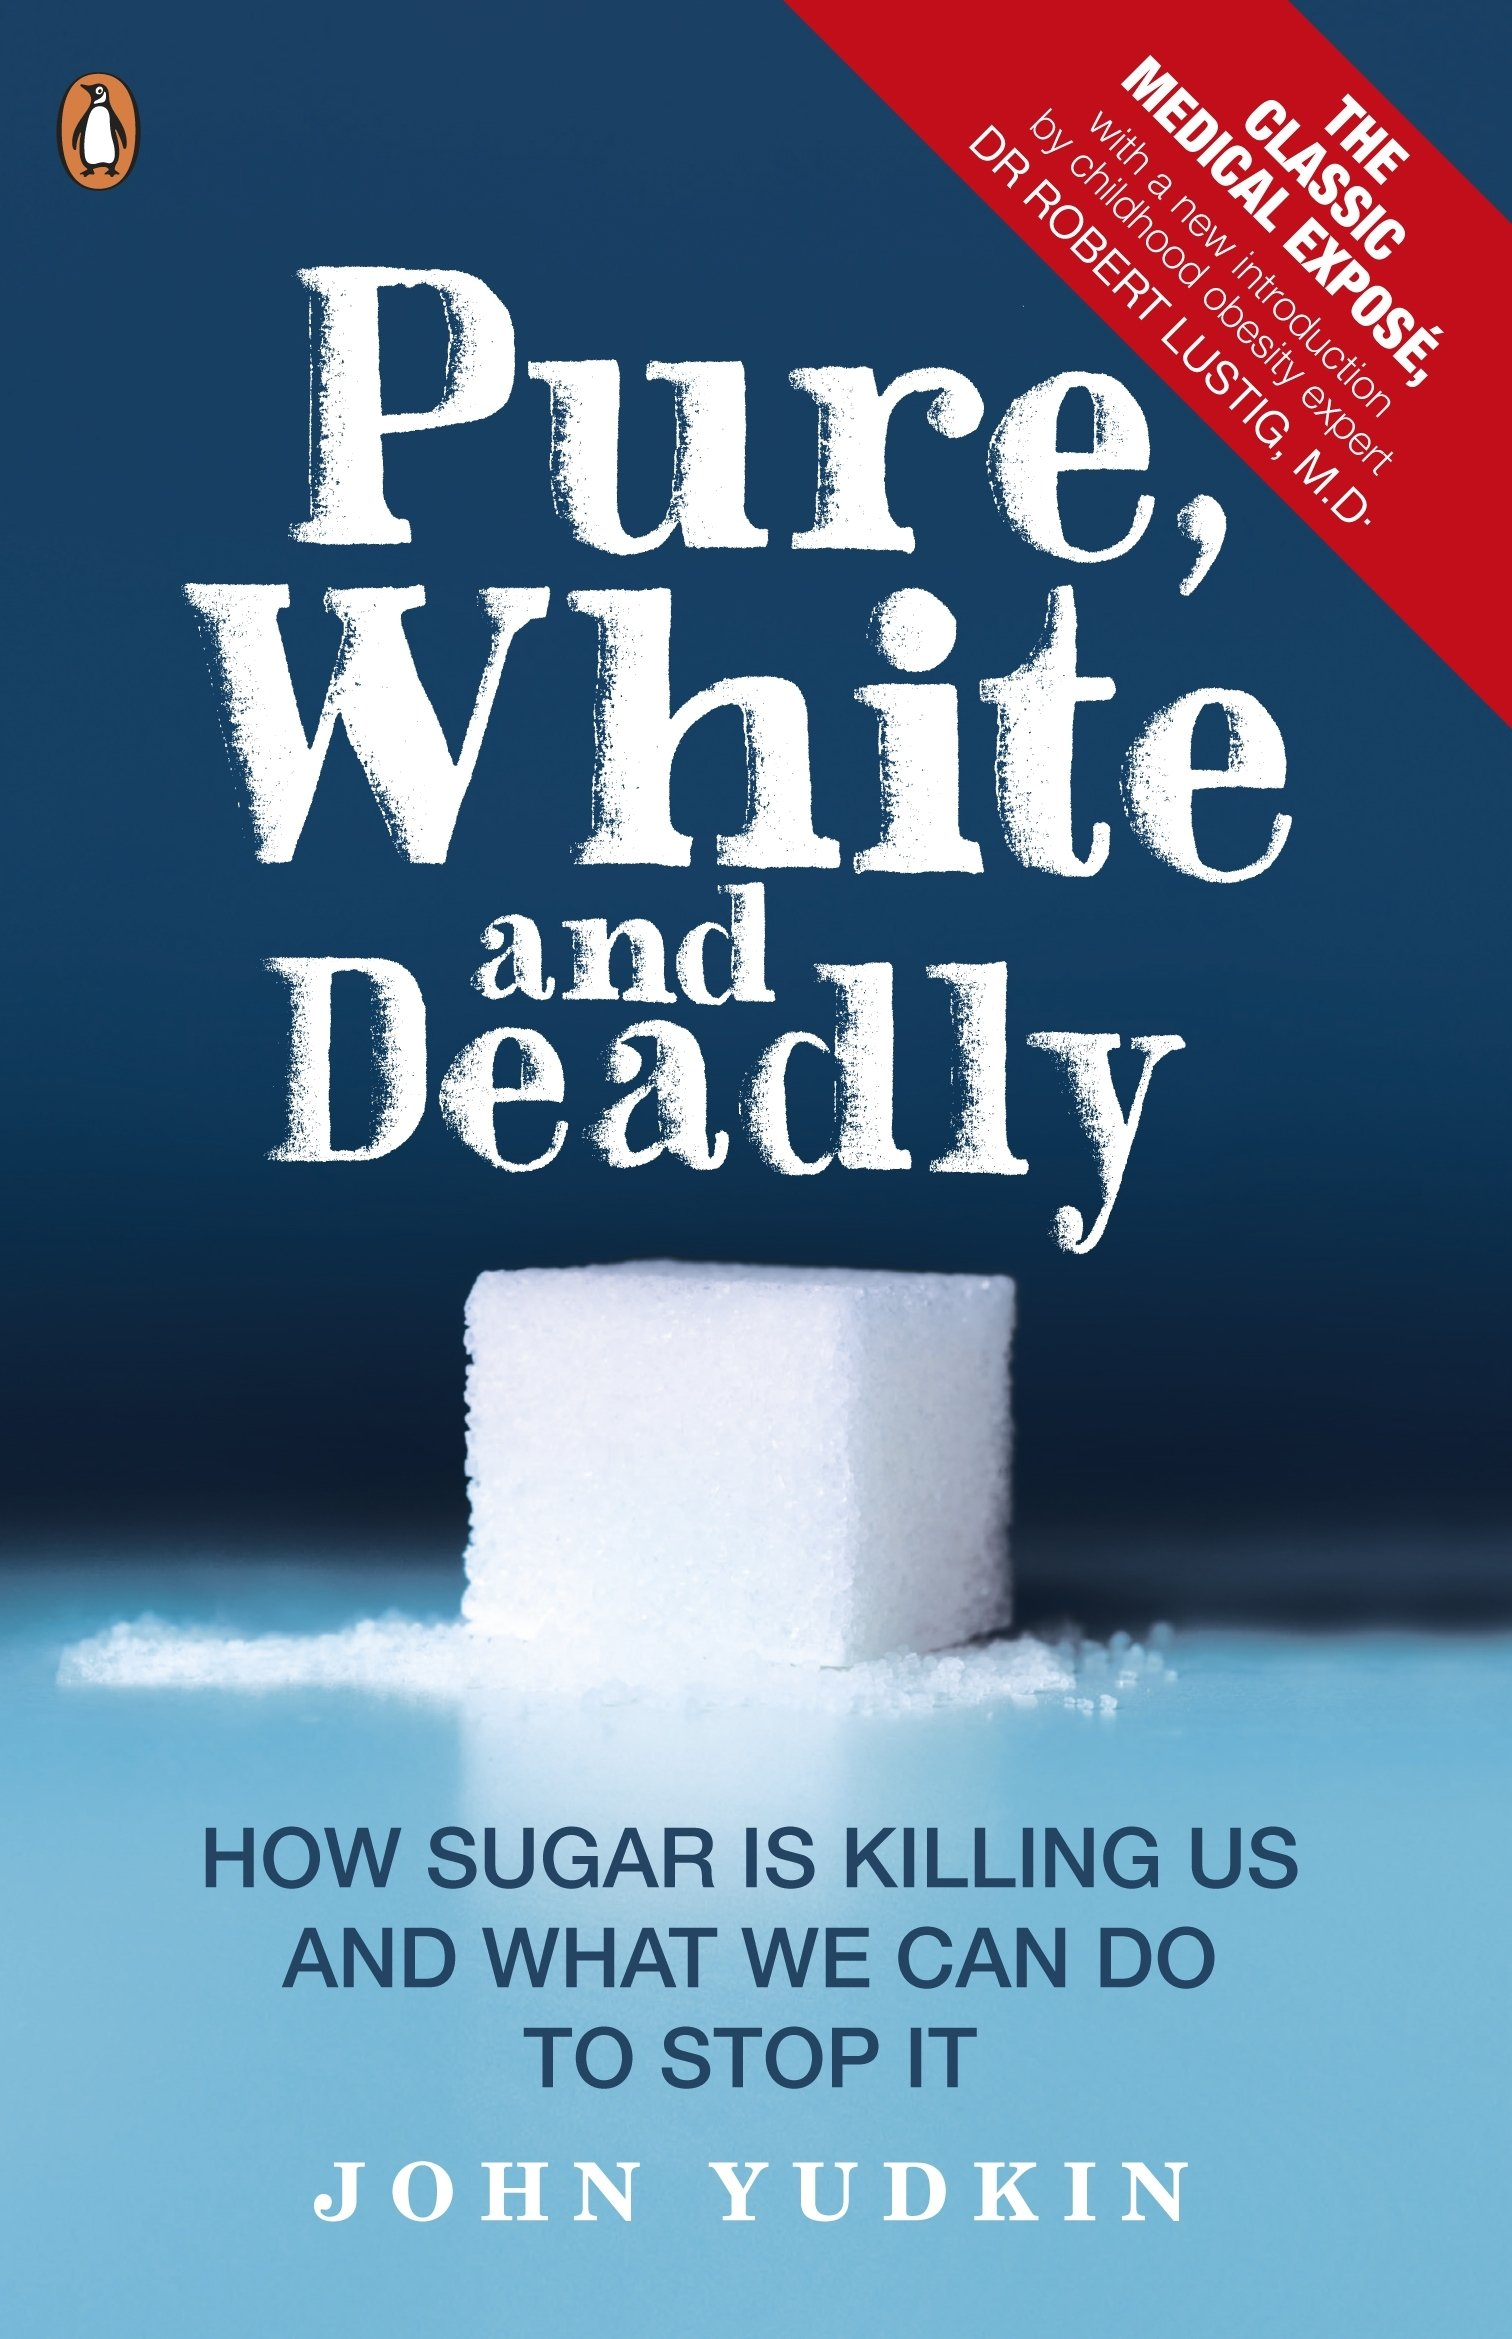 Pure, White, and Deadly - by John YudkinSugar. It's killing us.Why do we eat so much of it? What are its hidden dangers? In 1972, when British scientist John Yudkin first proved that sugar was bad for our health, he was ignored by the majority of the medical profession and rubbished by the food industry.We should have heeded his warning.Today, 1 in 4 adults in the UK are overweight.There is an epidemic of obese six month olds around the globe.Sugar consumption has tripled since World War II.Using everyday language and a range of scientific evidence, Professor Yudkin explores the ins and out of sugar, from the different types - is brown sugar really better than white? - to how it is hidden inside our everyday foods, and how it is damaging our health.Brought up-to-date by childhood obesity expert Dr Robert Lustig M.D., his classic exposé on the hidden dangers of sugar is essential reading for anyone interested in their health, the health of their children and the health of modern society.